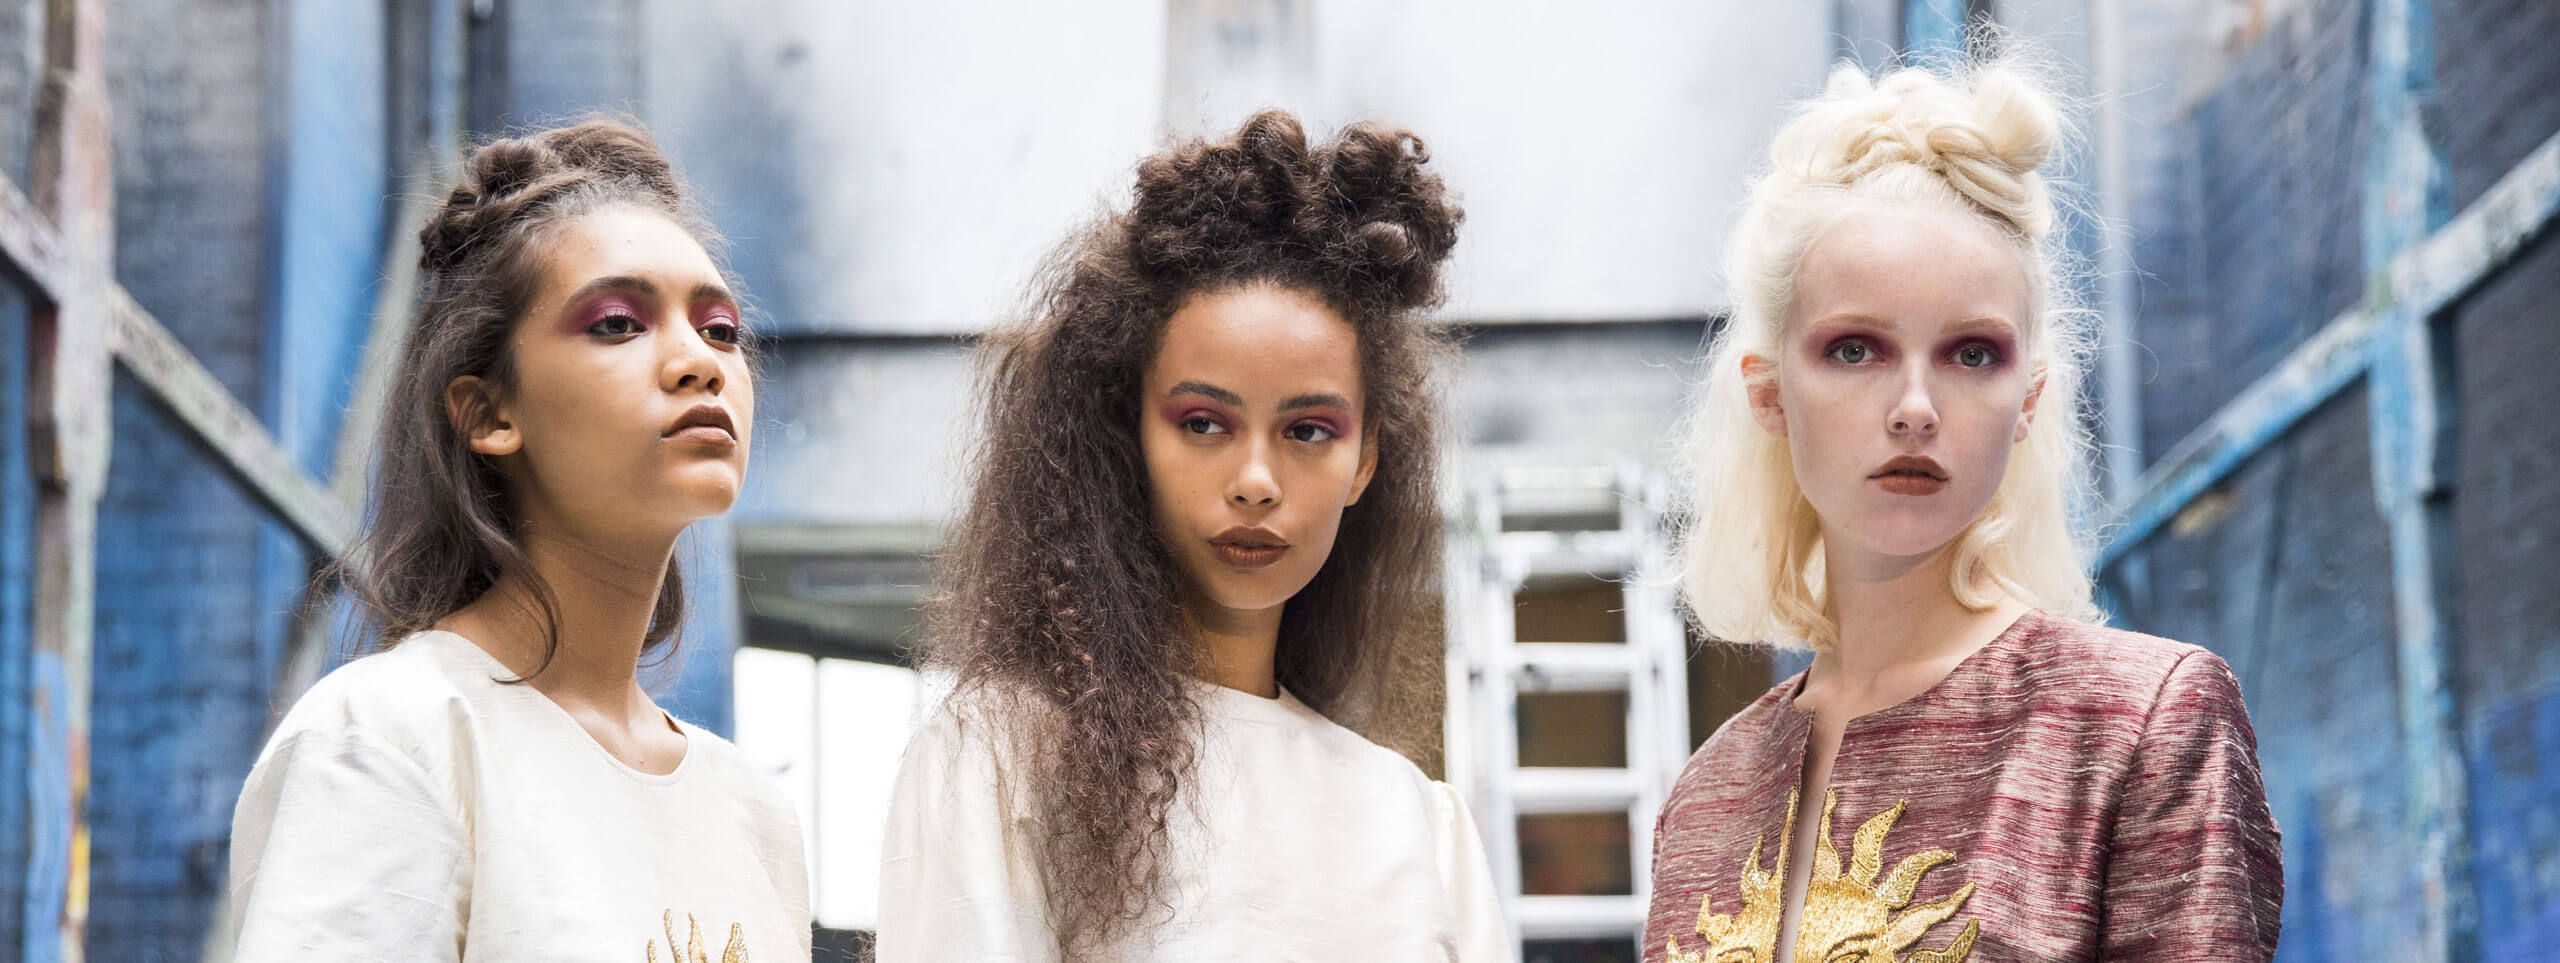 Models wear hair in half-up half-down hairstyle, a hairstyle trend for women